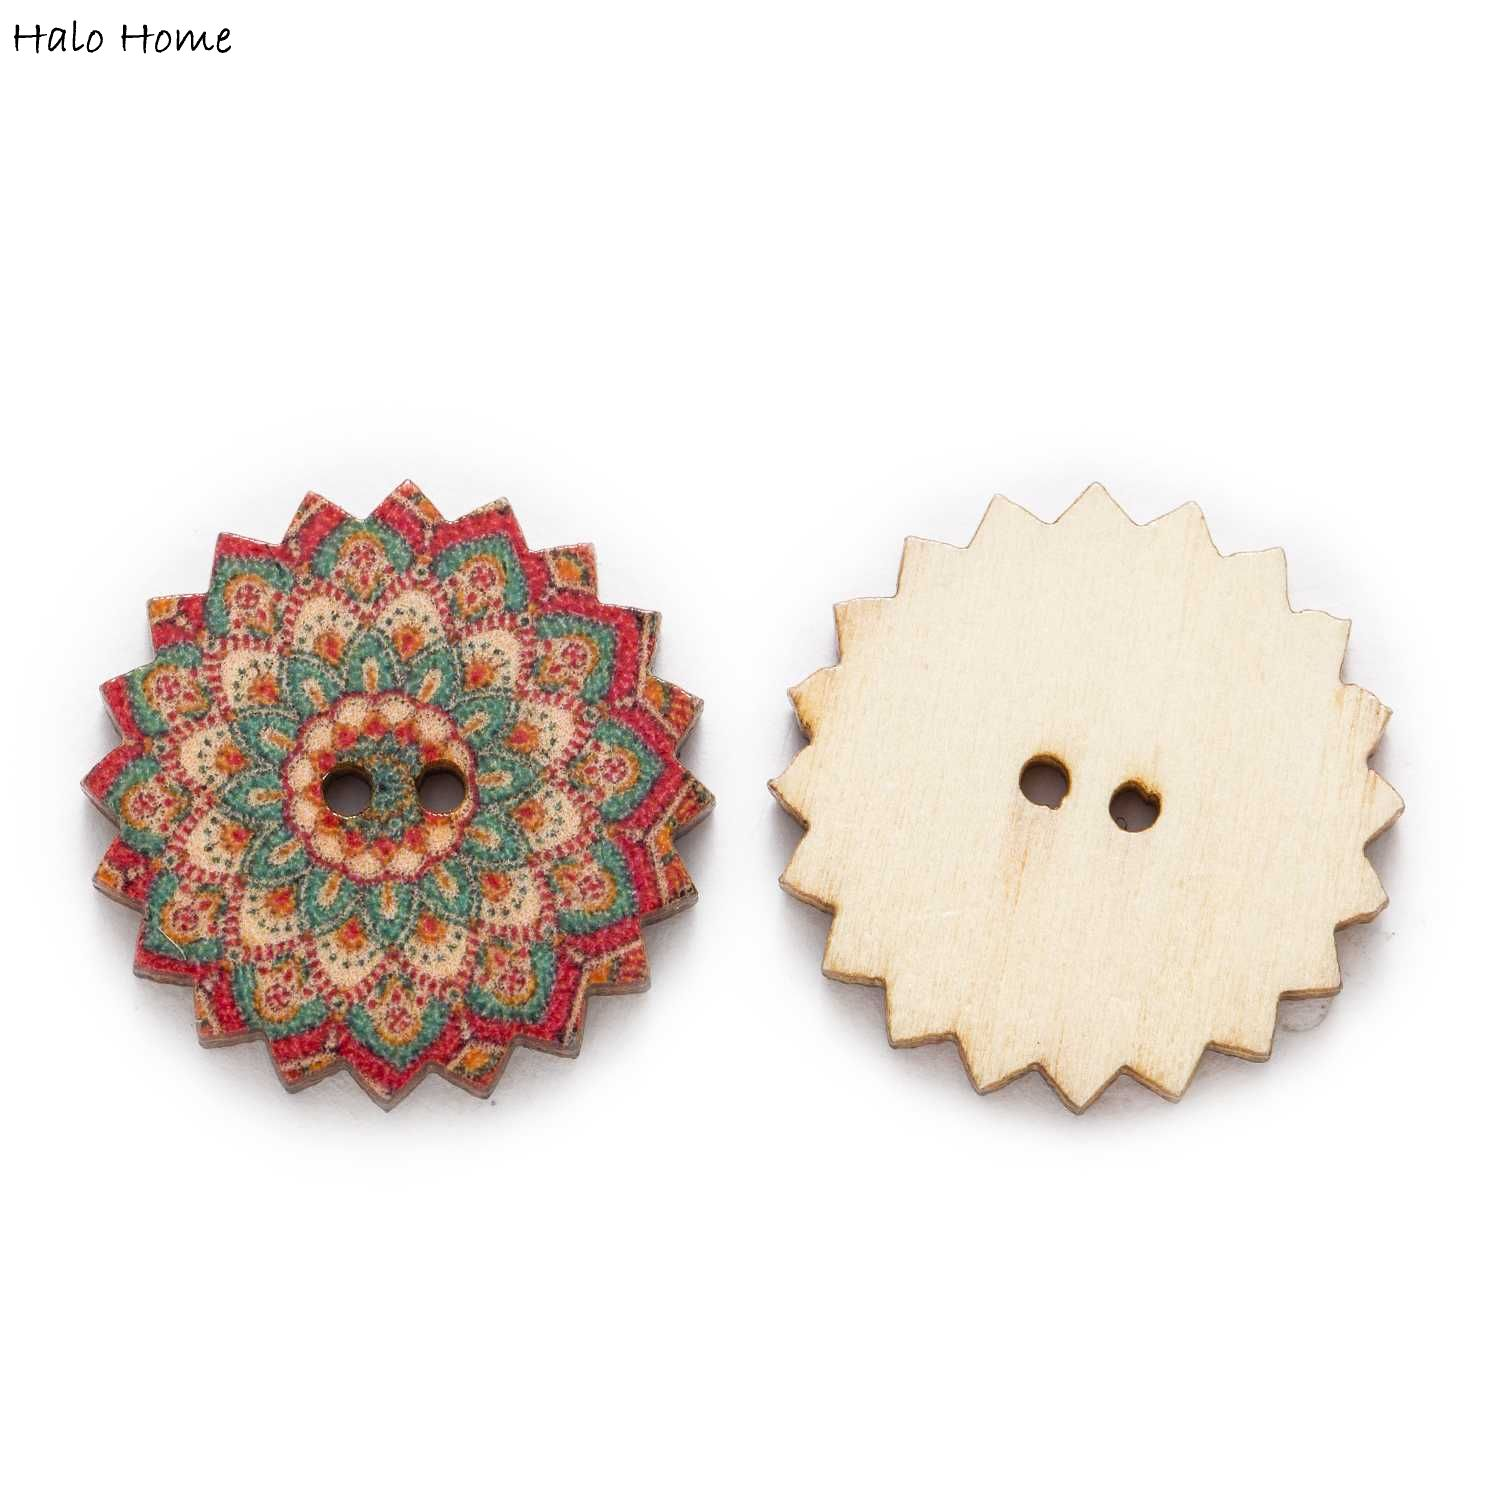 50pcs Painted Gear Wood Buttons for Handwork Sewing Scrapbook Clothing Crafts Accessories Gift Card 20-25mm